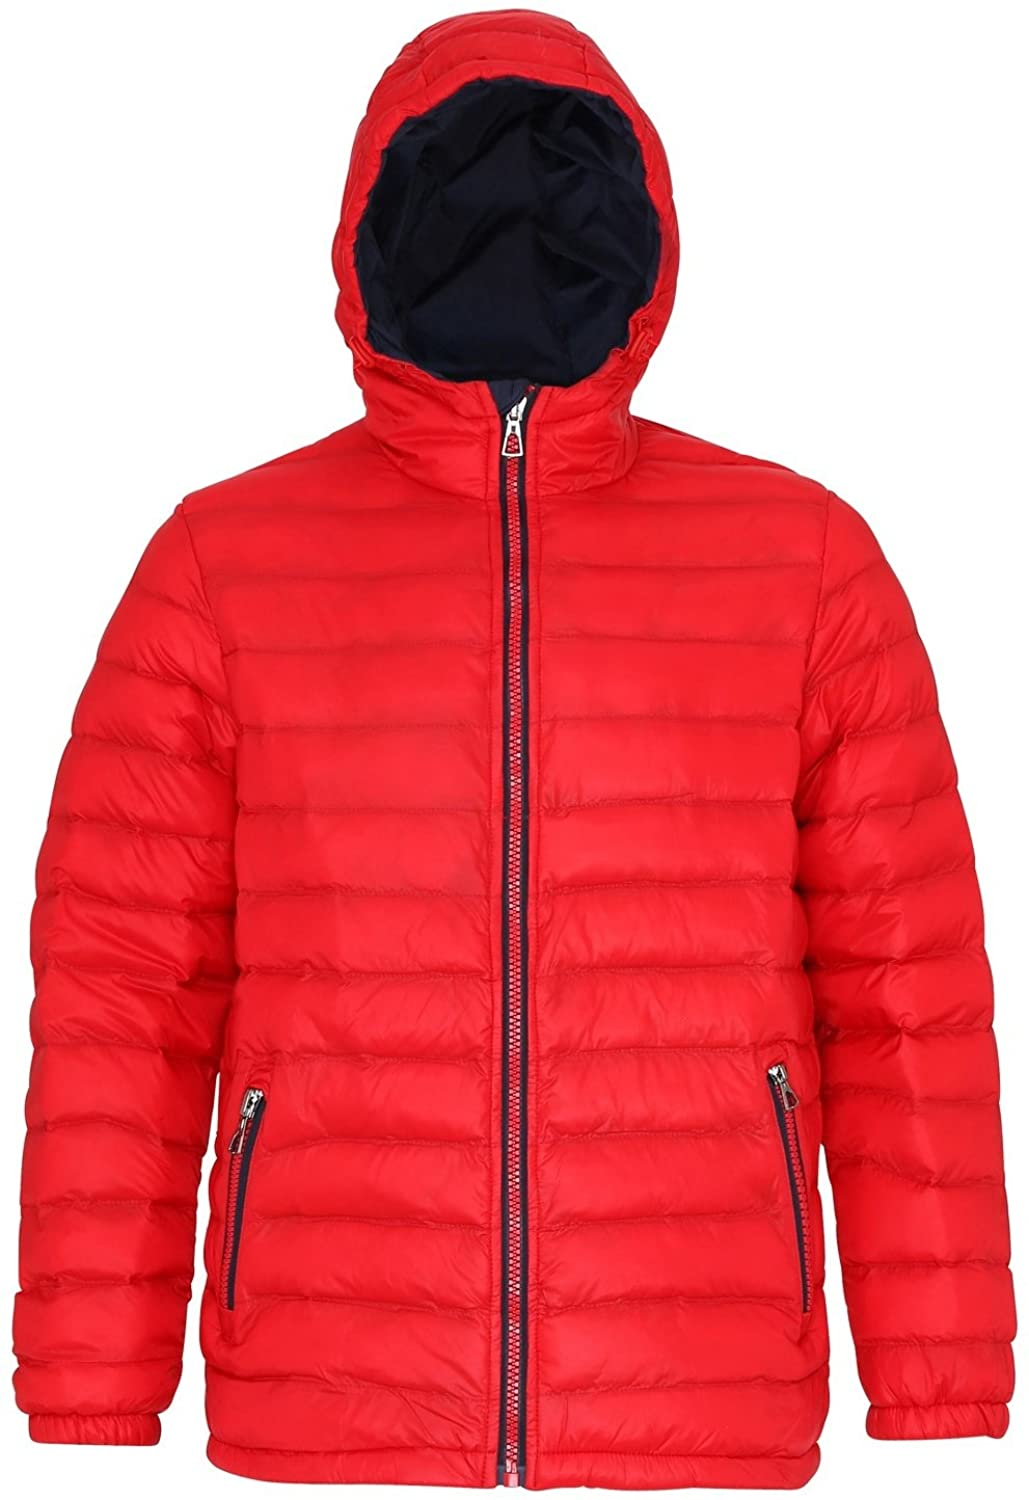 2786 Mens Hooded Water & Wind Resistant Padded Jacket (XL) (Red/Navy)